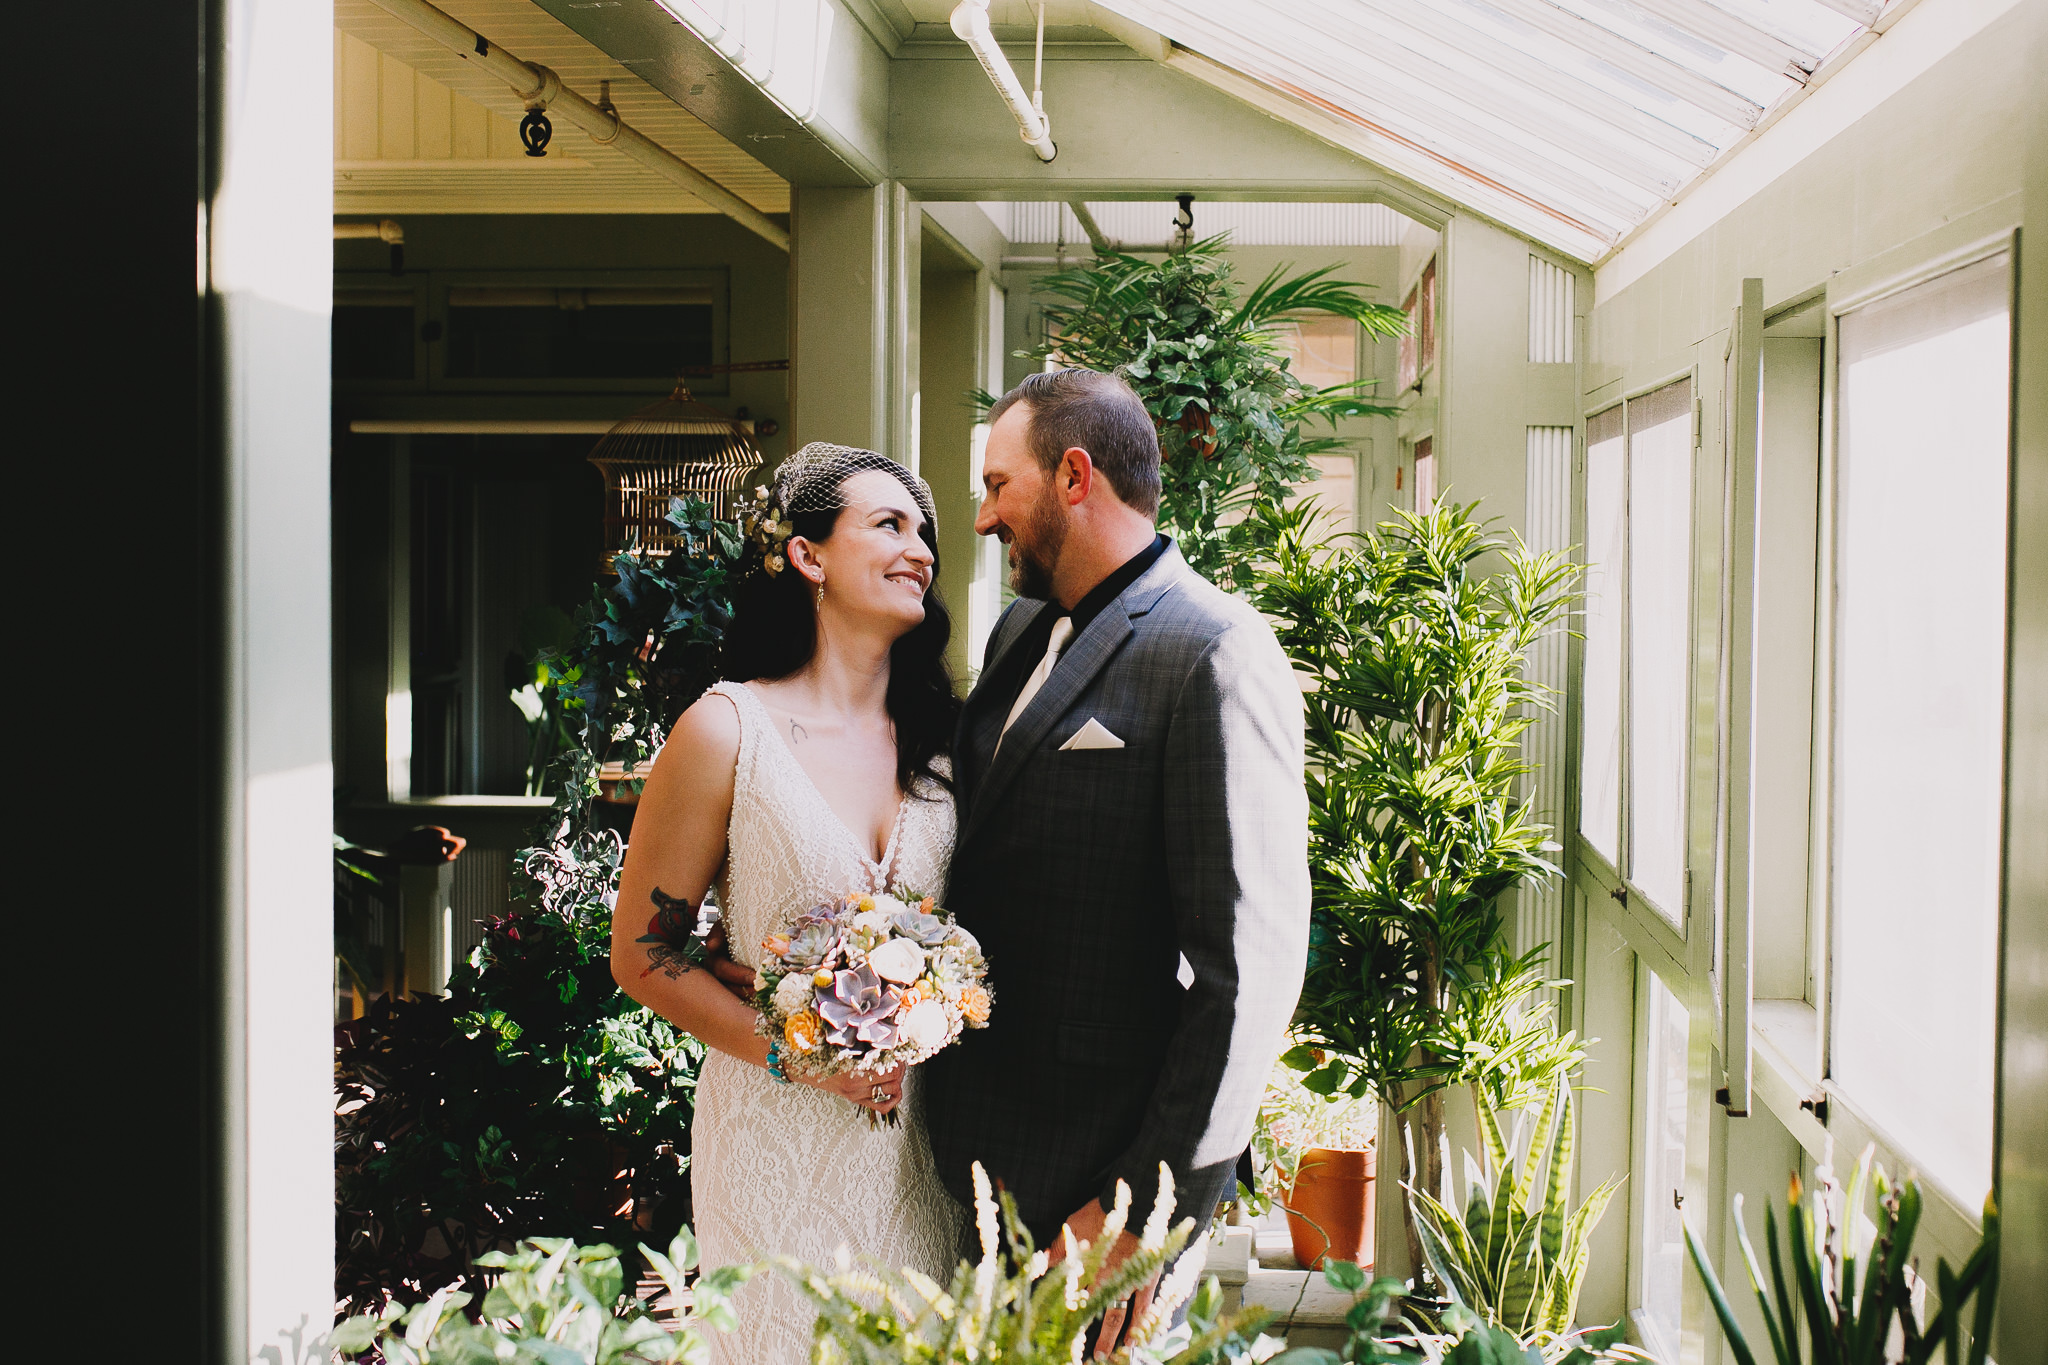 Archer Inspired Photography Sara and Aaron Winchester Mystery House NorCal San Jose California Wedding Photographer-258.jpg